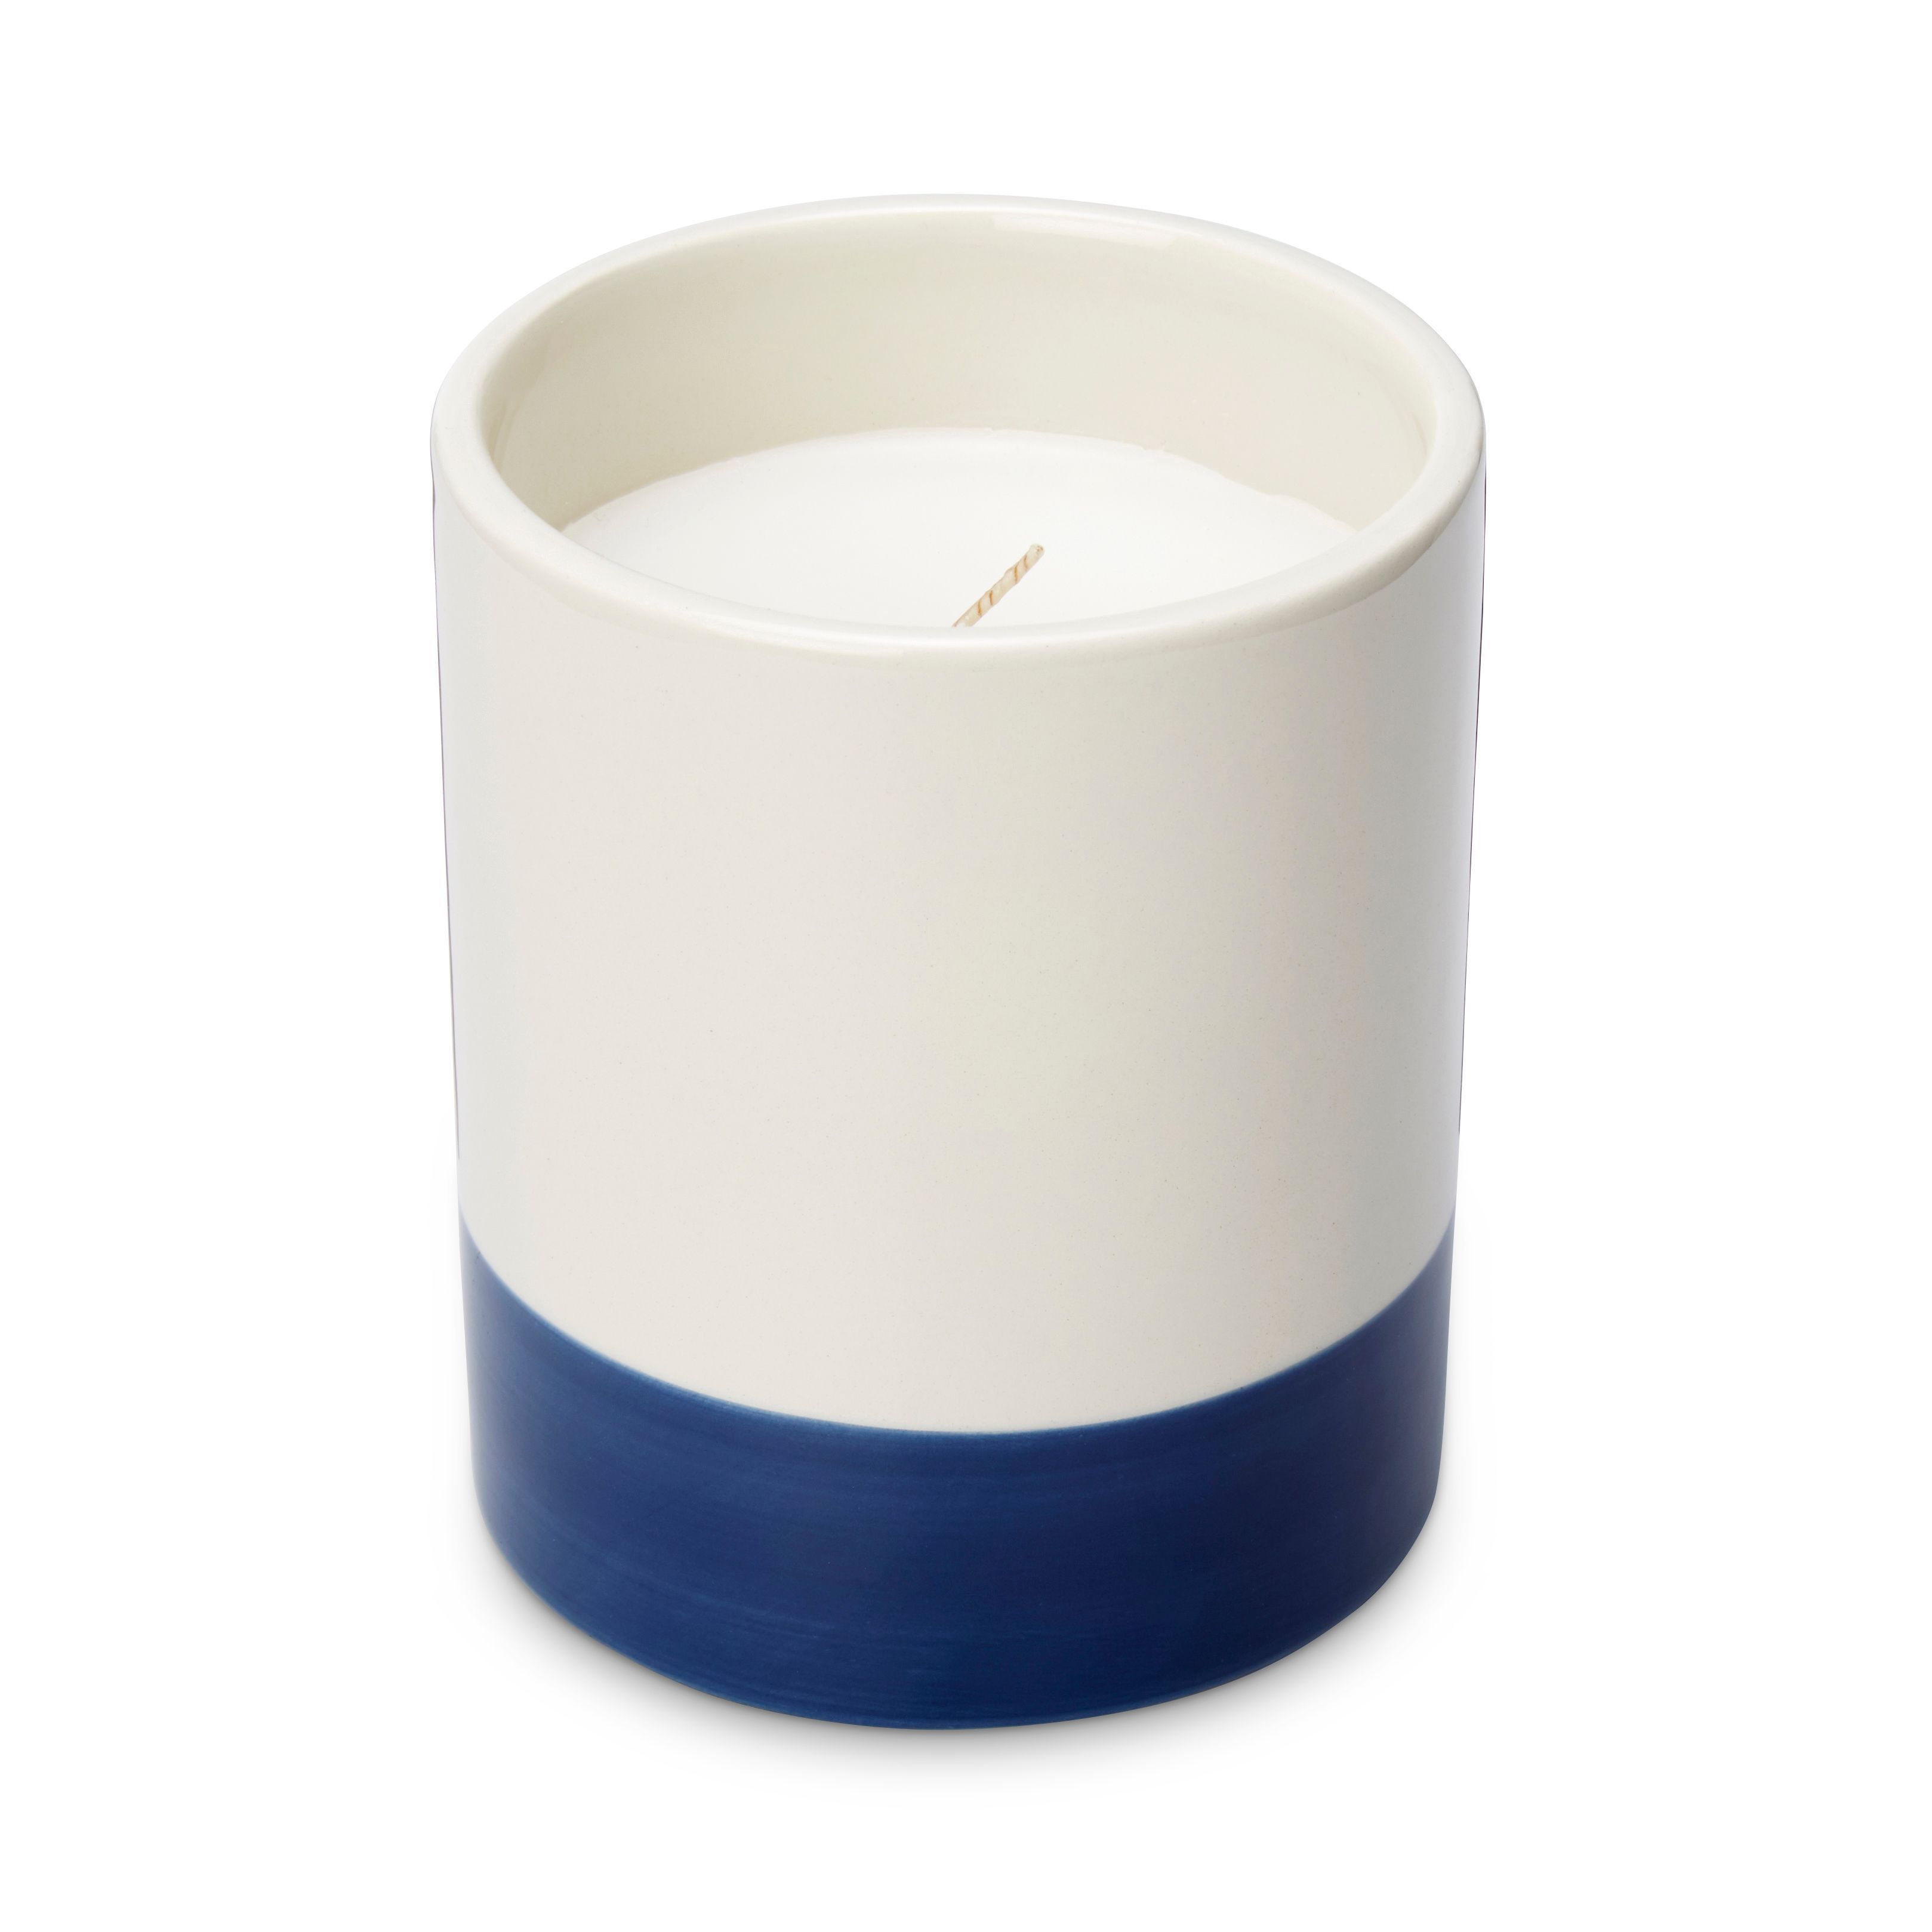 Blue Ceramic Filled Candle